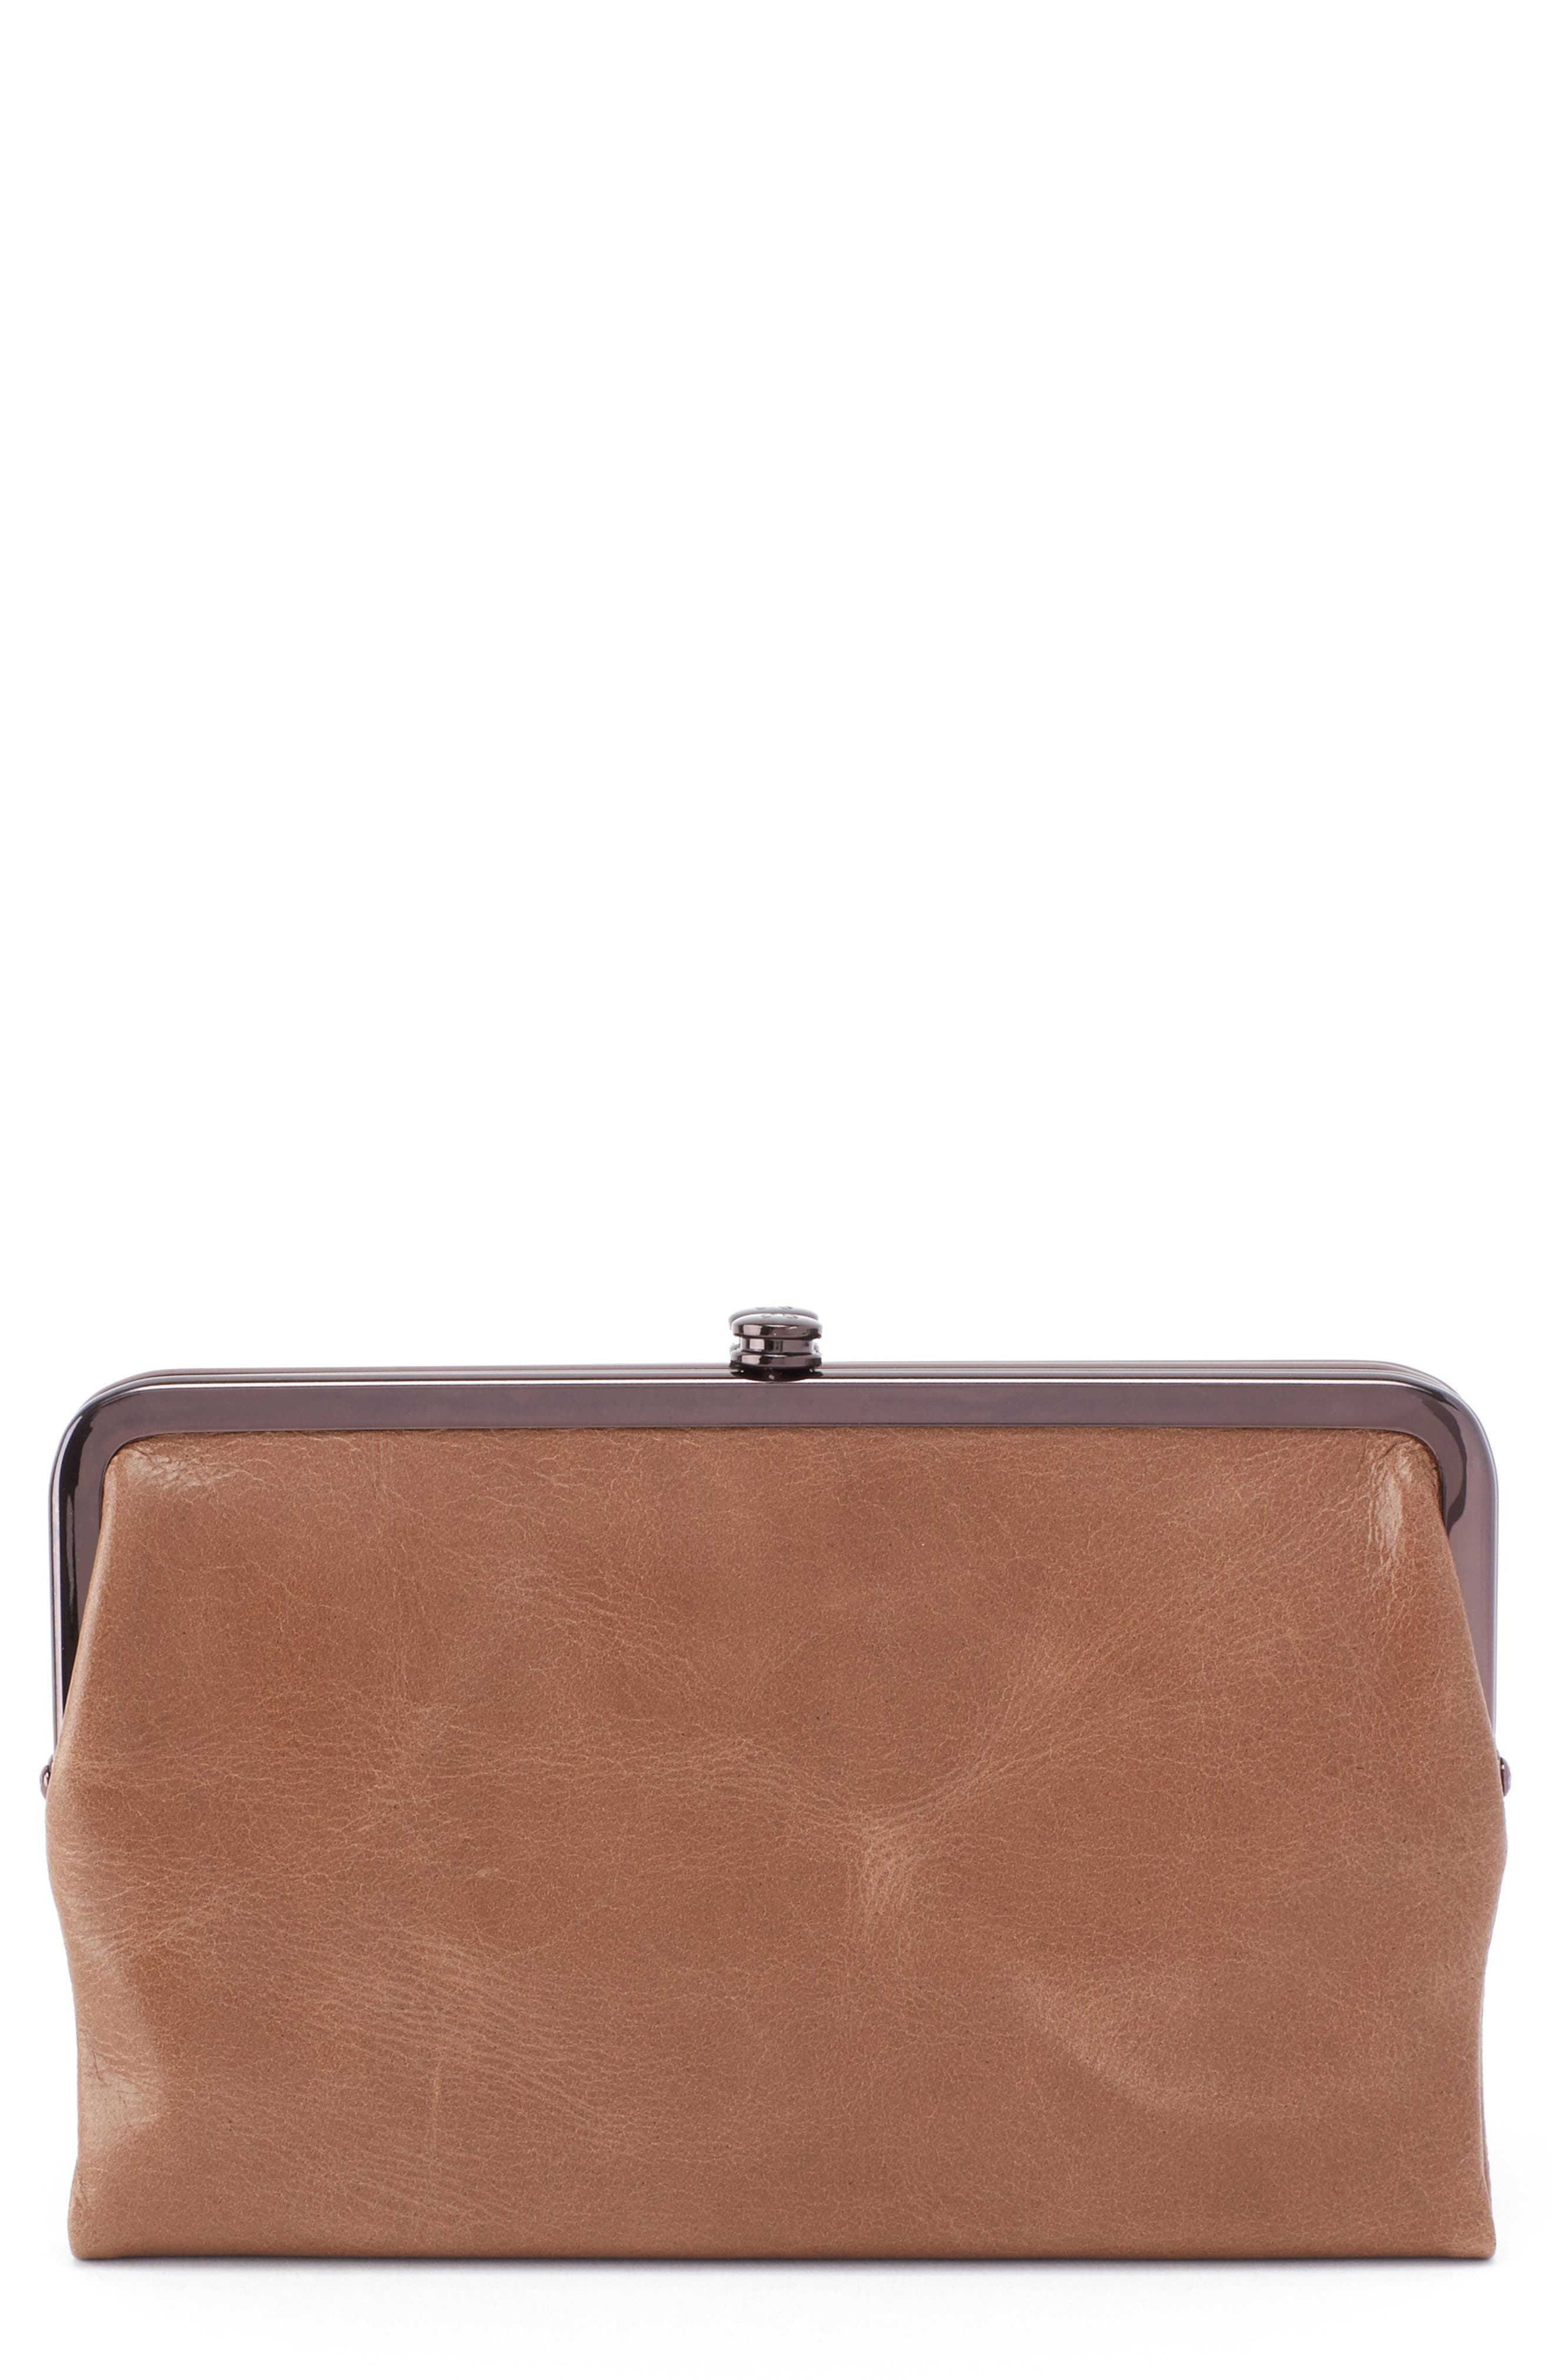 Glory Wallet,                         Main,                         color, MINK